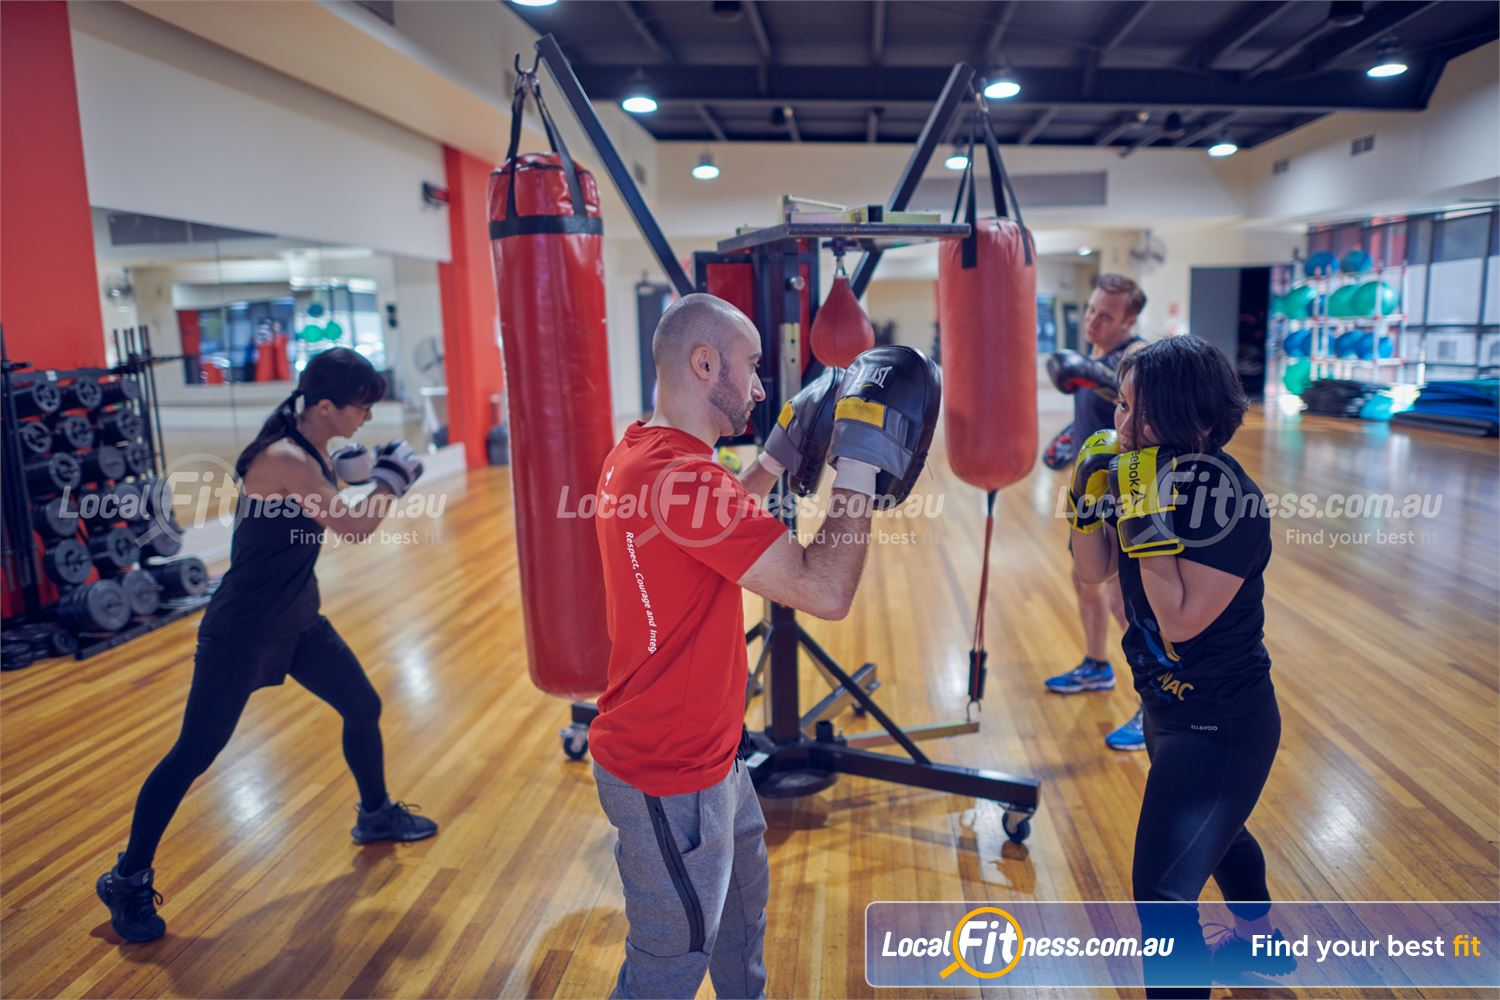 Maribyrnong Aquatic Centre Maribyrnong Our Maribyrnong gym includes a boxing setup with speedball, heavy bags and more.